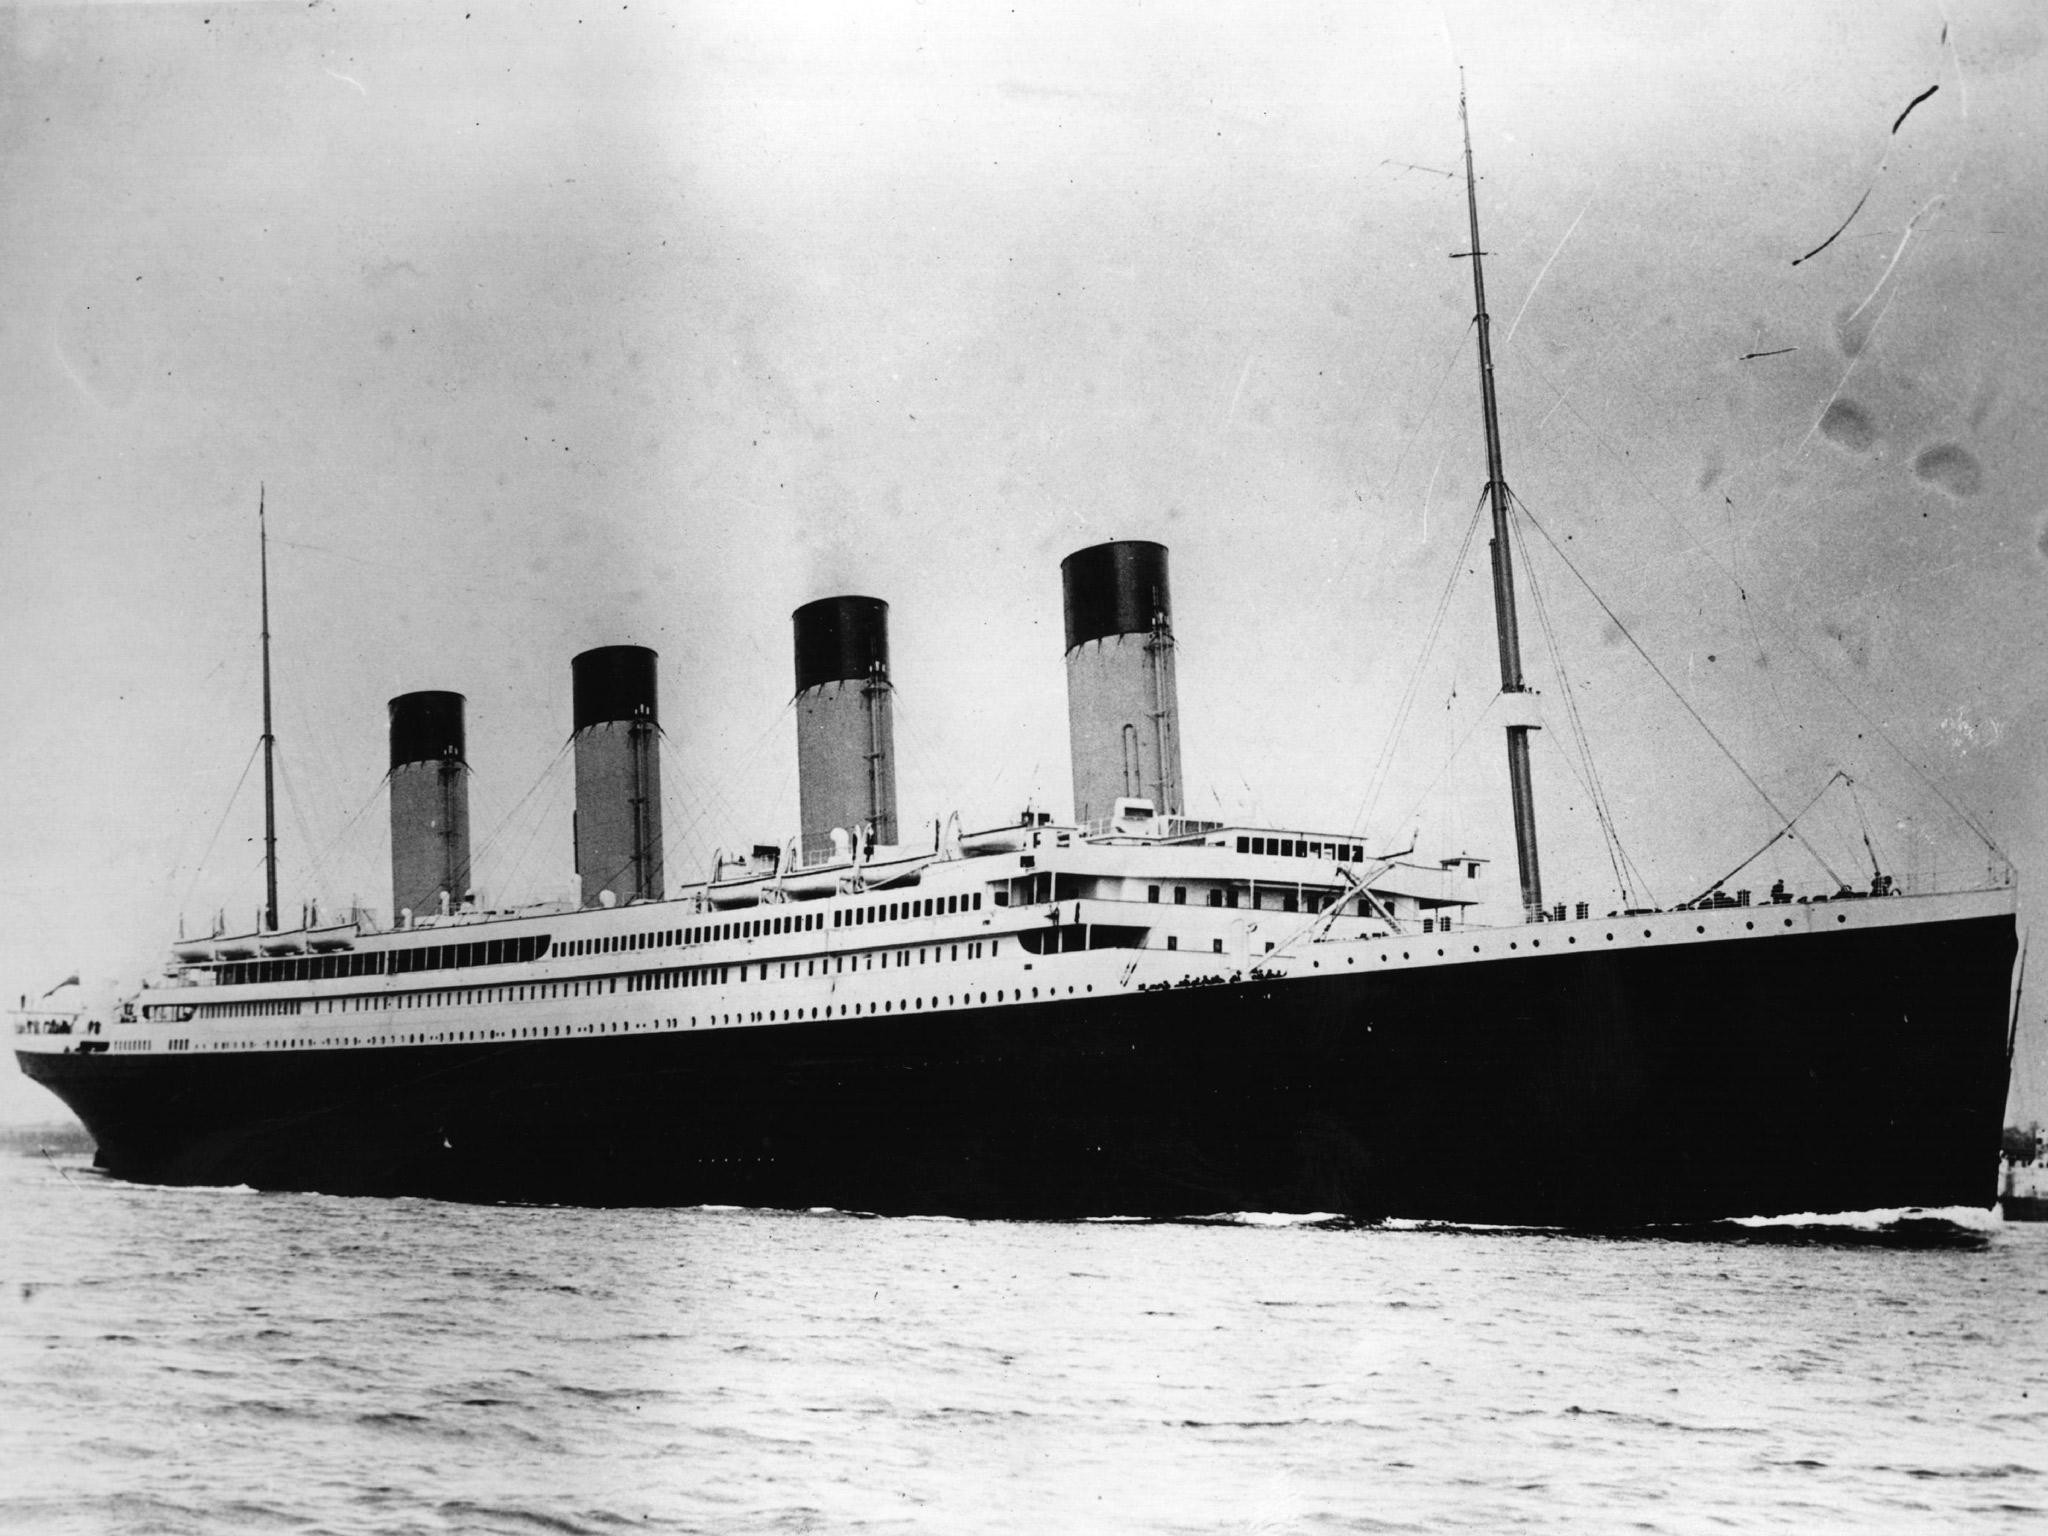 2048x1536 Titanic sank due to enormous uncontrollable fire, not iceberg, claim  experts | The Independent